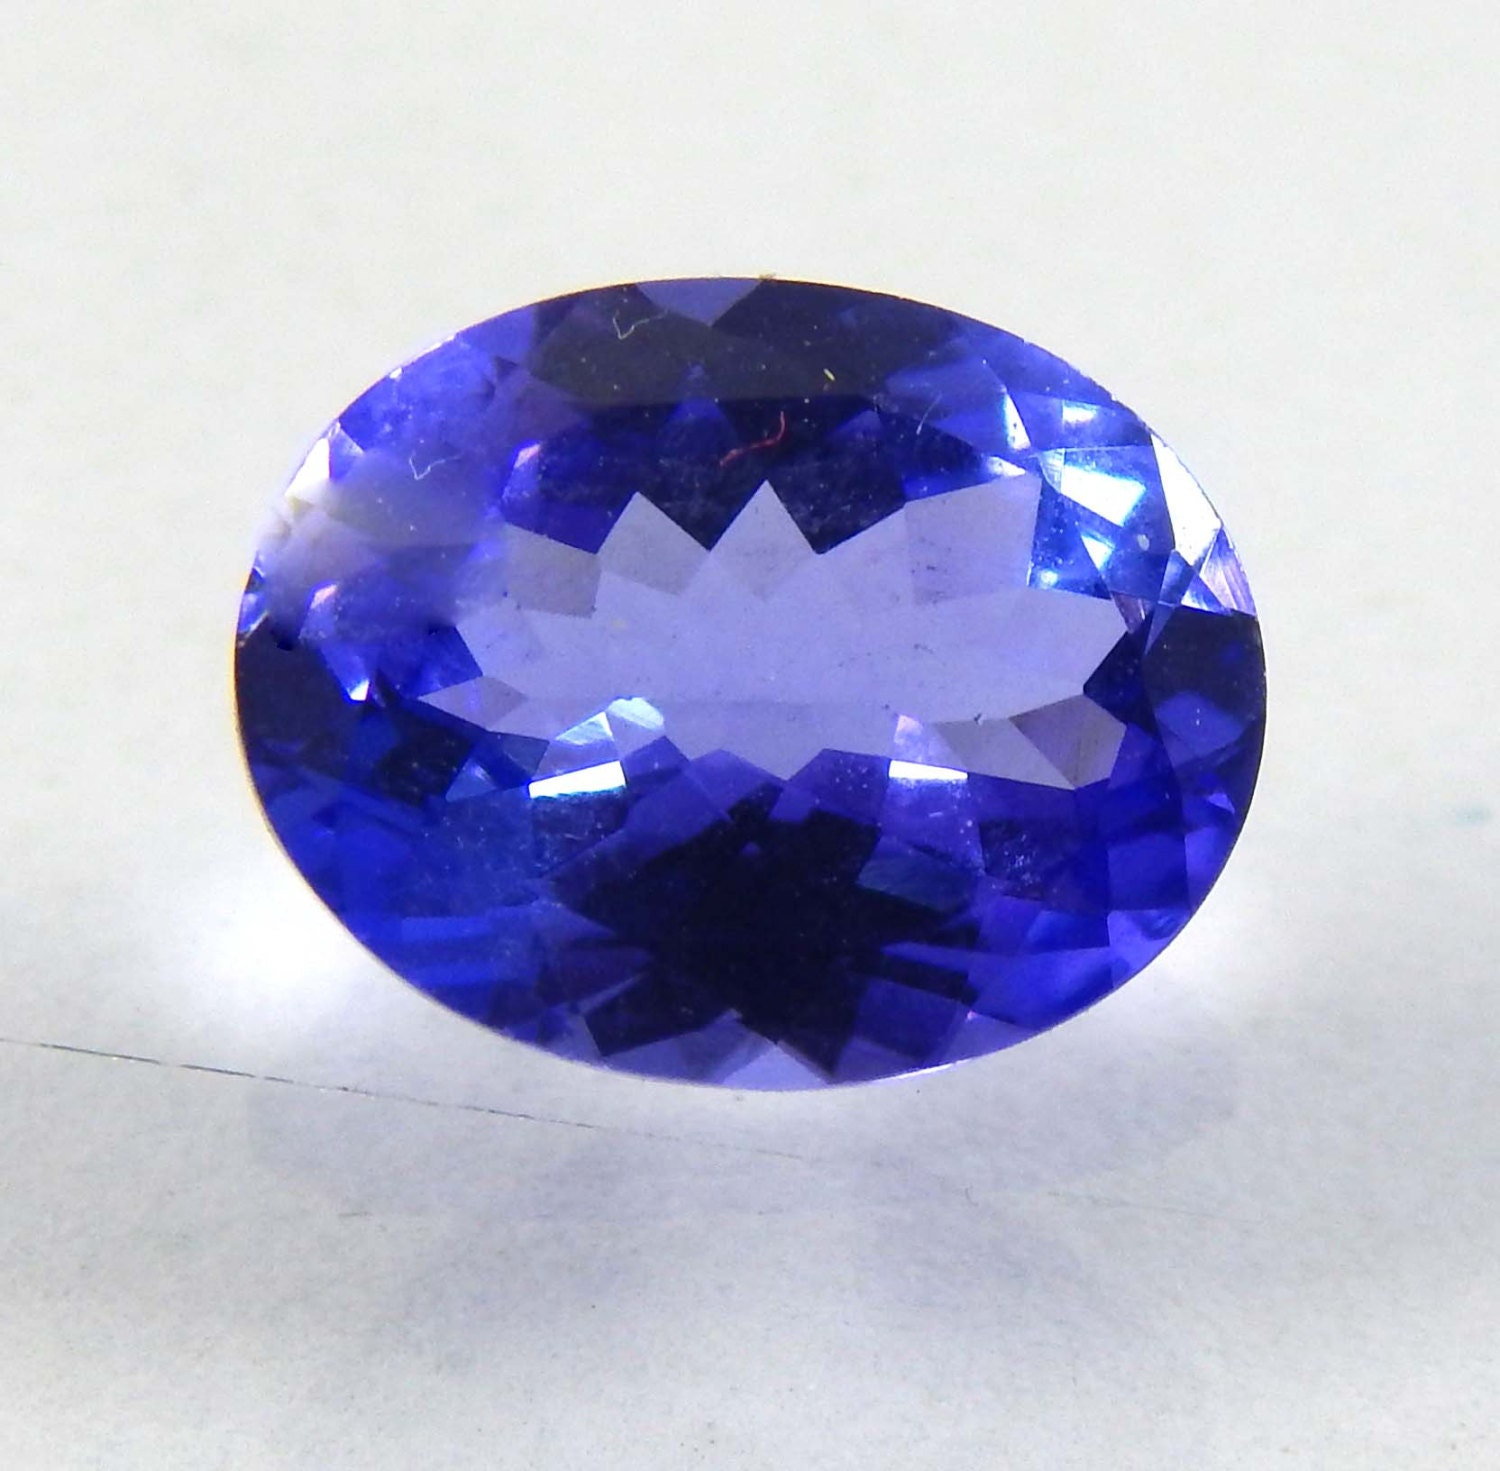 pin blue loose aaa natural cut investment quality emerald violet tanzanite gem grade